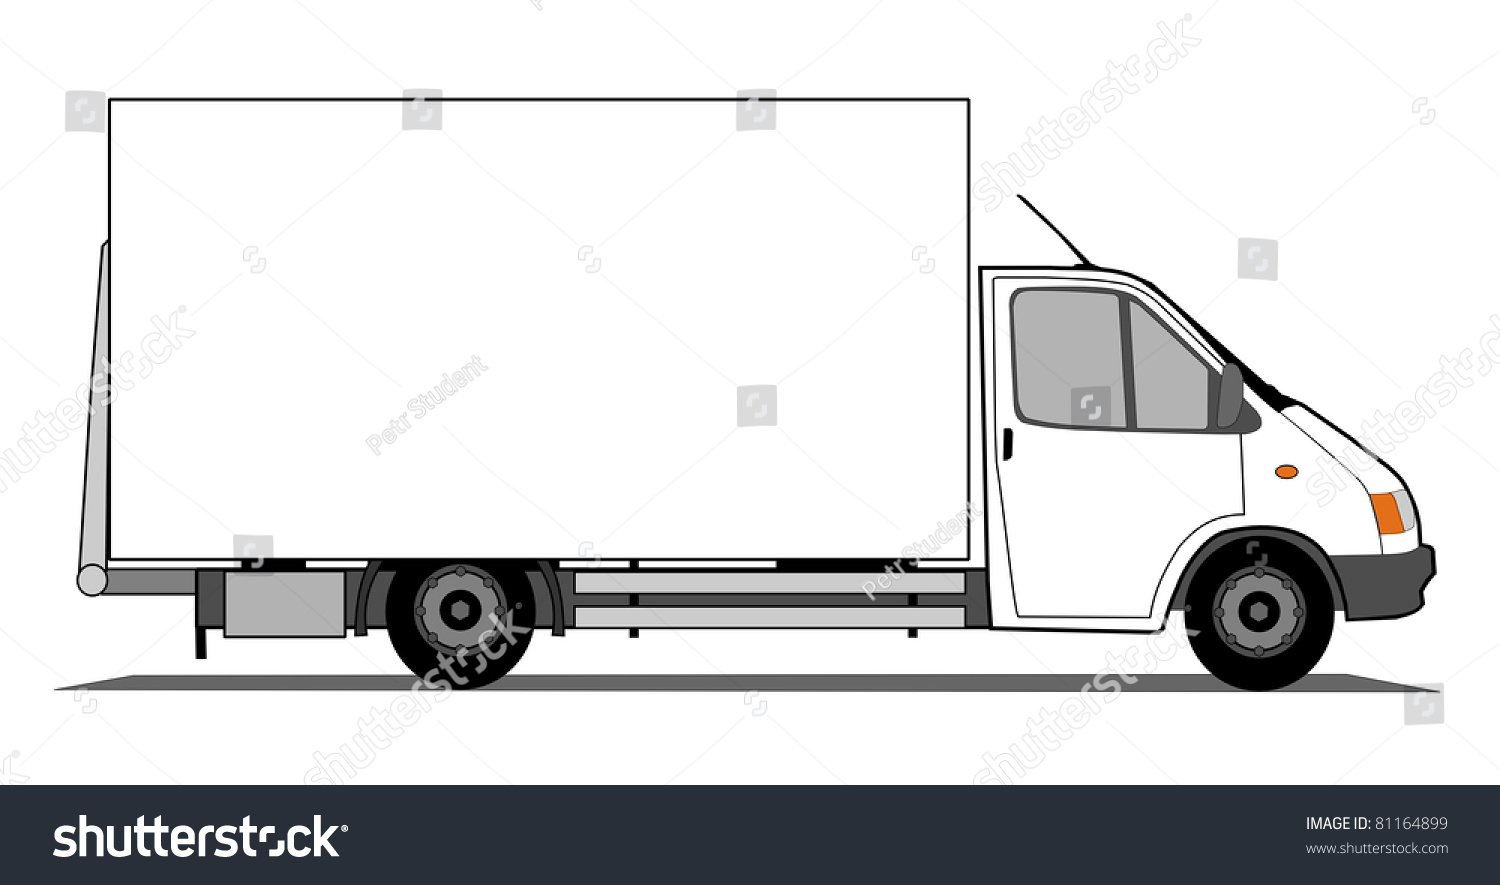 Delivery Van Stock Vector 81164899 : Shutterstock